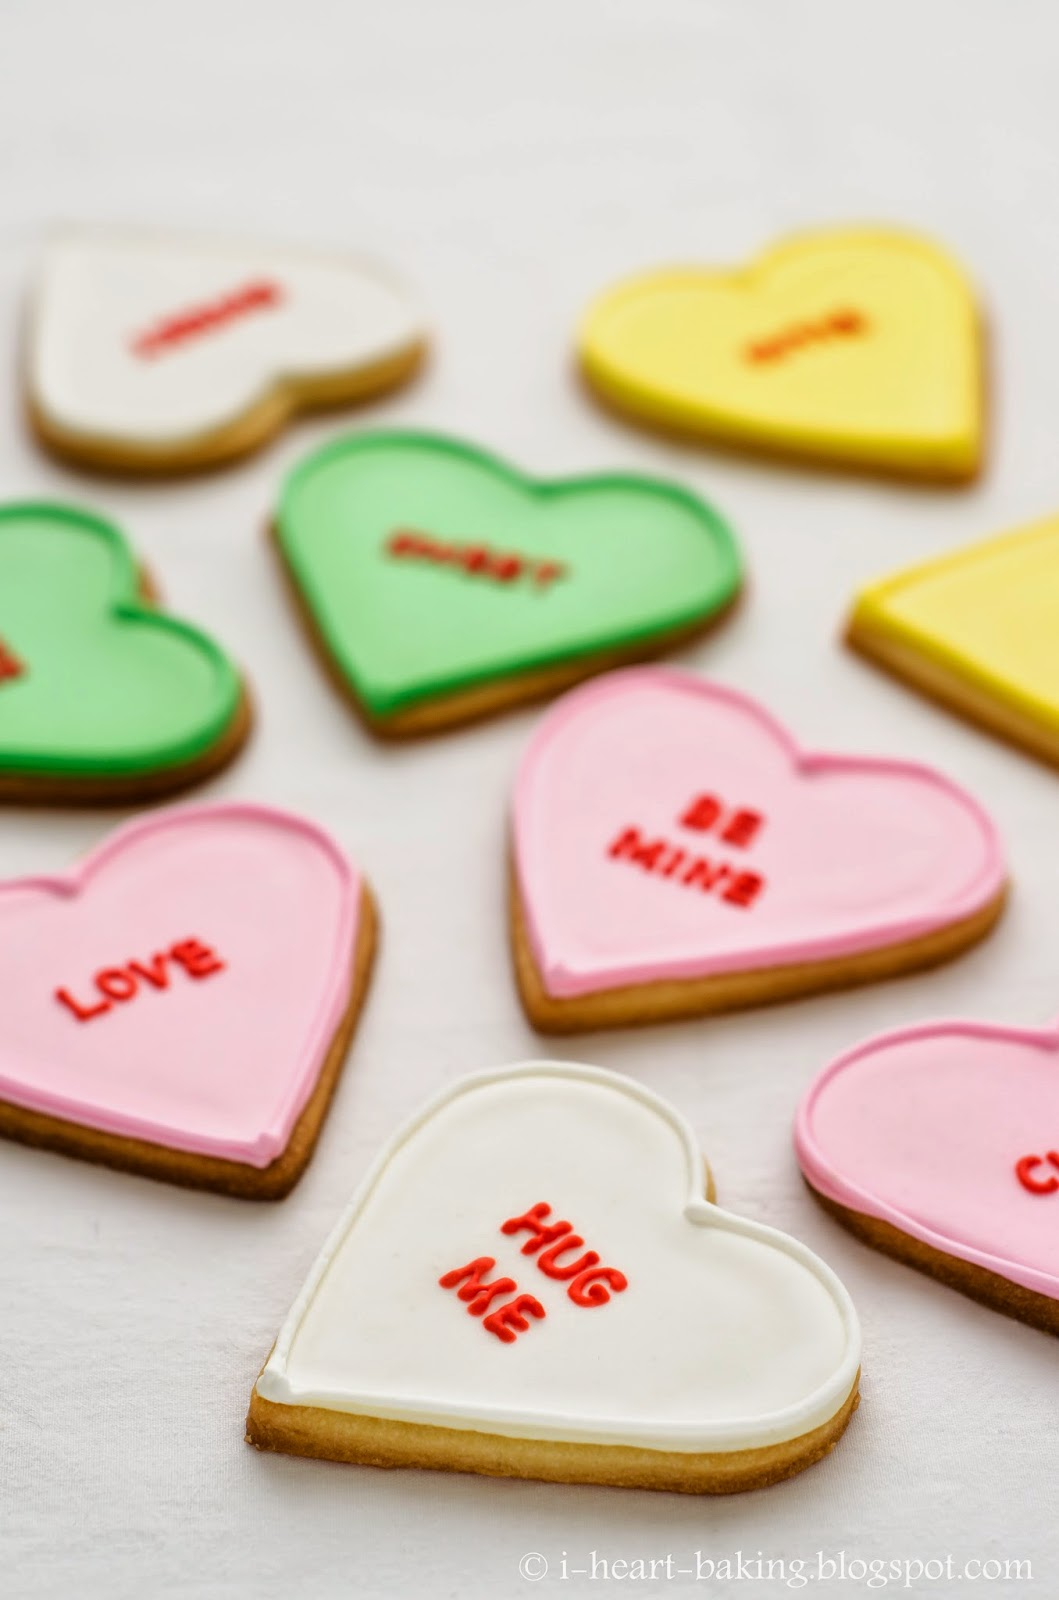 heart baking!: valentine's conversation heart cookies